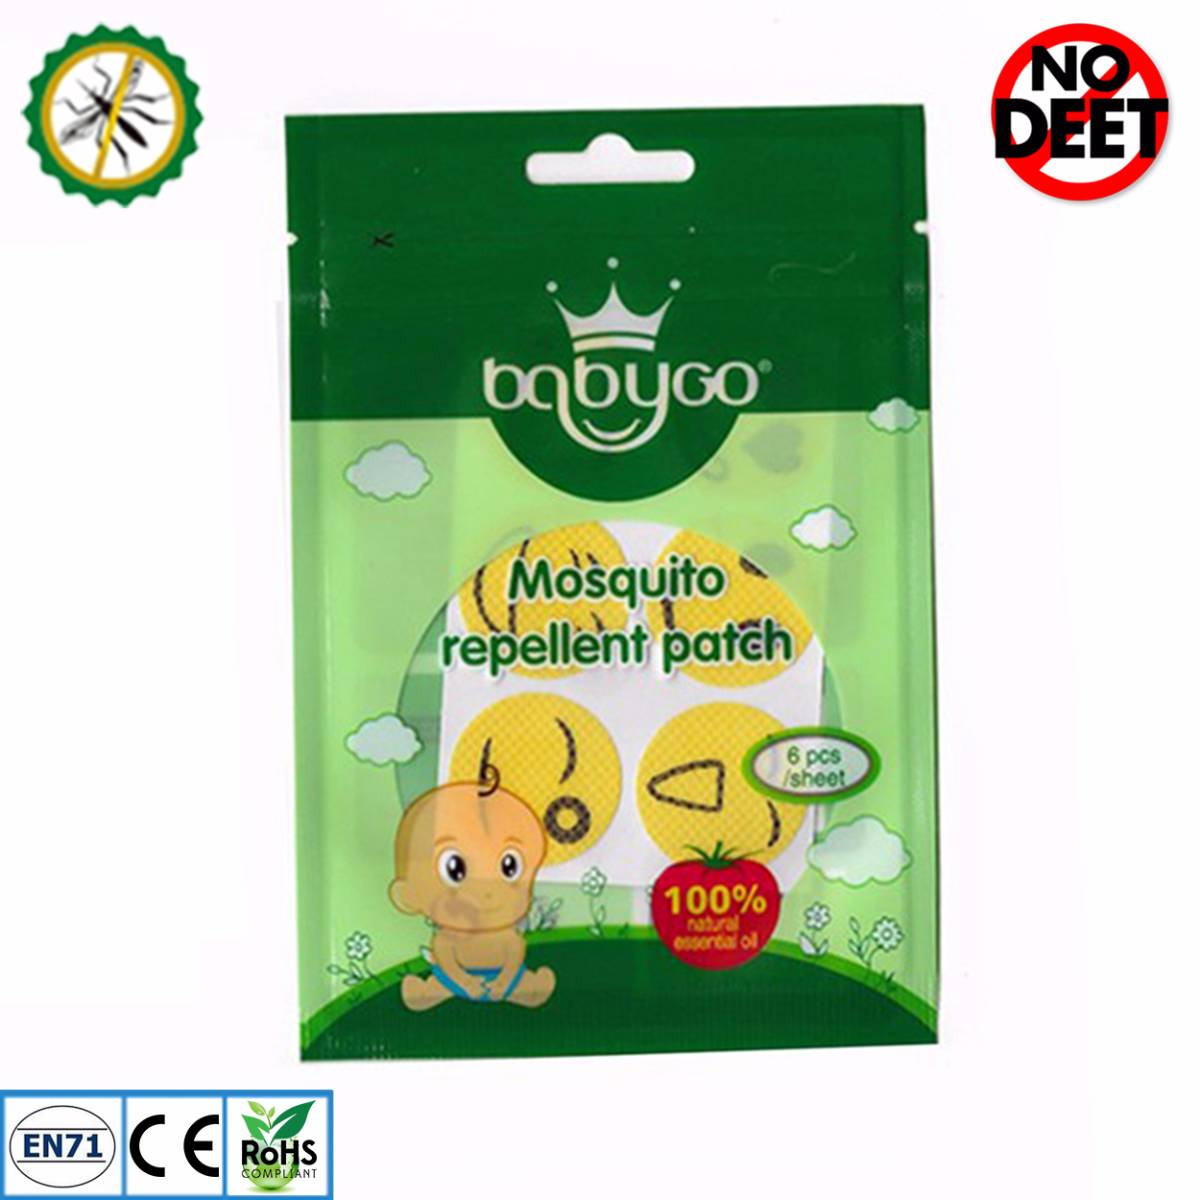 Babygo Mosquito Repellent Patch Smiley (sticker Anti Nyamuk)